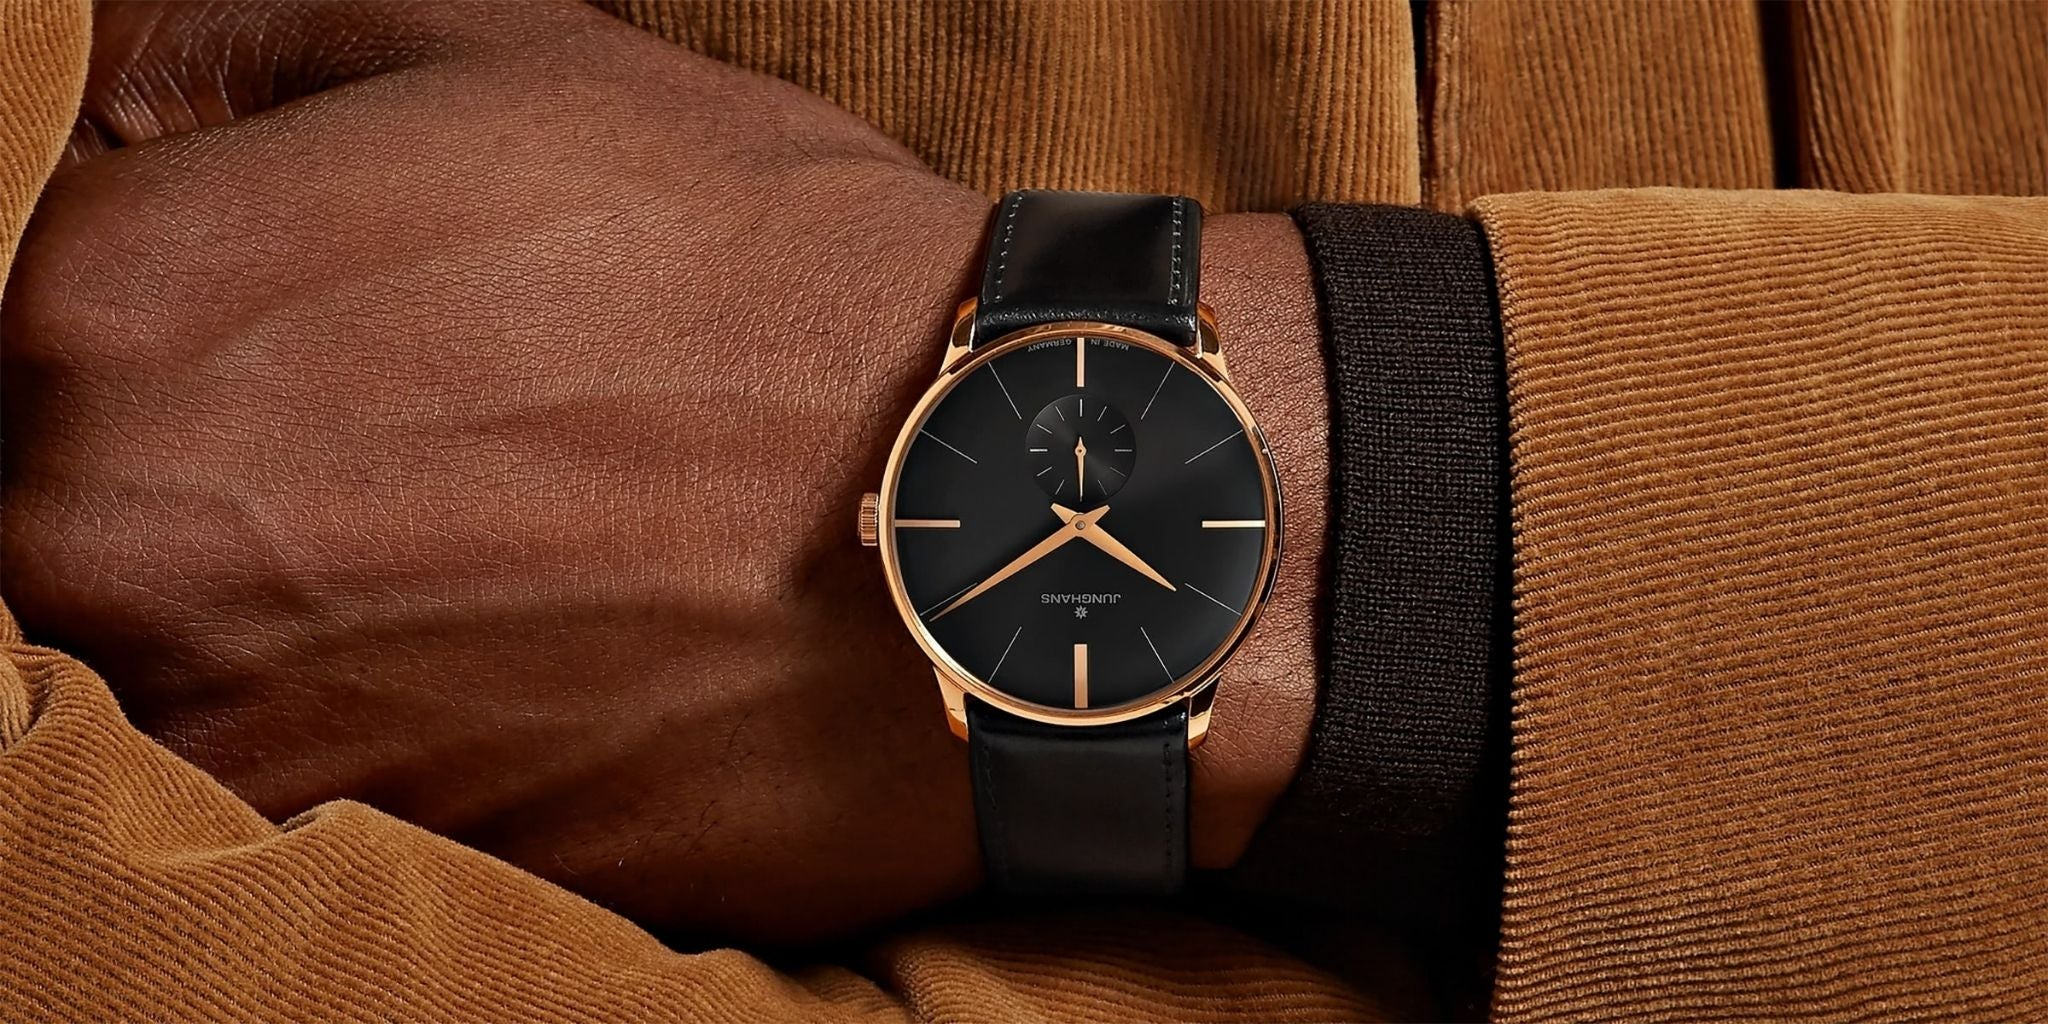 rose gold watches,  gold men watches, gold watches,  black and gold watches,  rose gold men watch,  black and gold men watches, women gold watches,  ladies watches in rose gold,